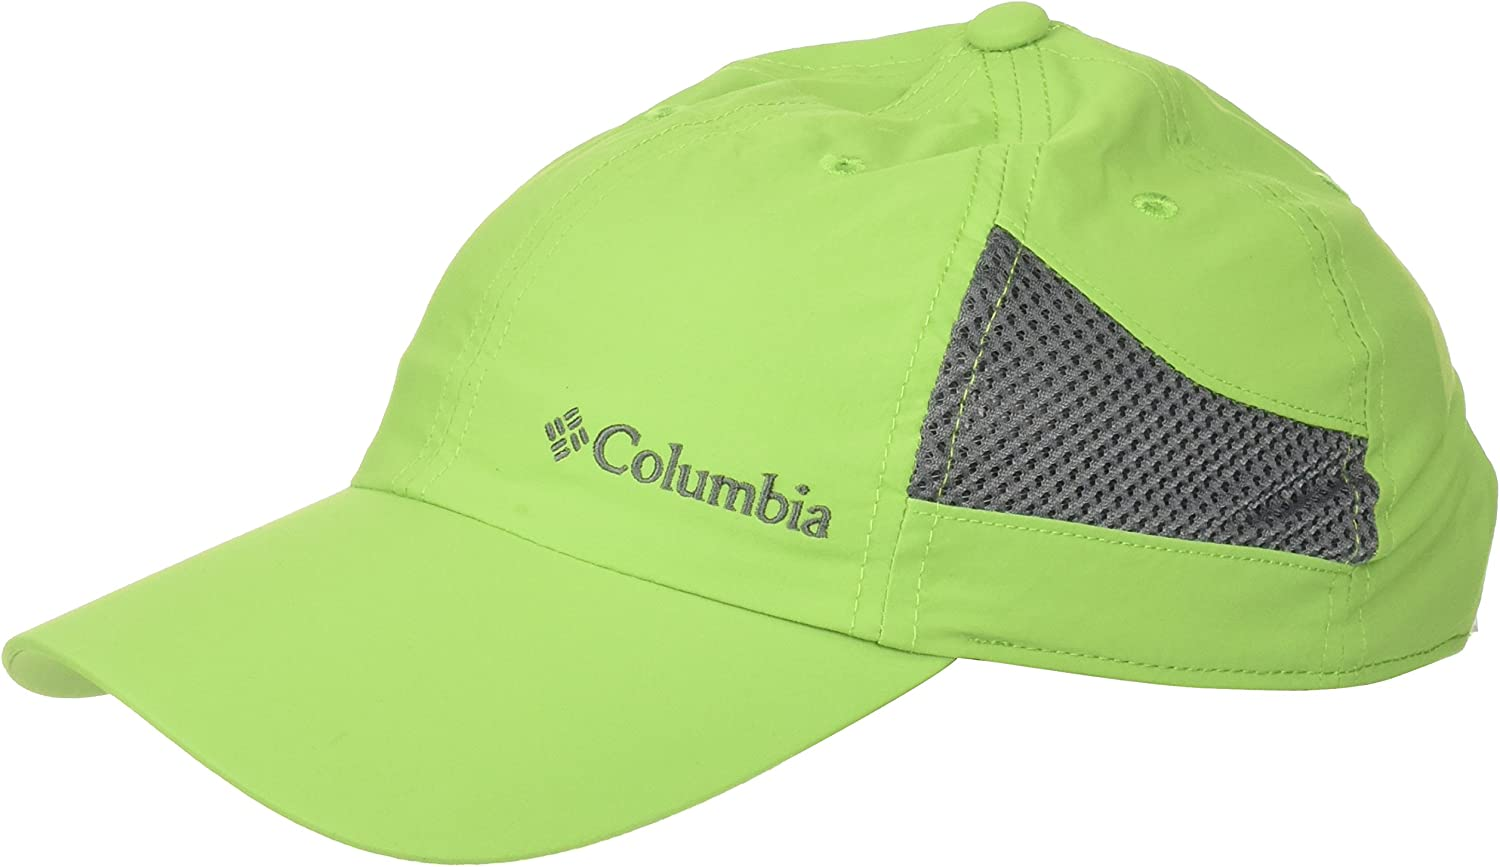 Columbia Tech Shade Gorra, Unisex Adulto: Amazon.es: Ropa y accesorios